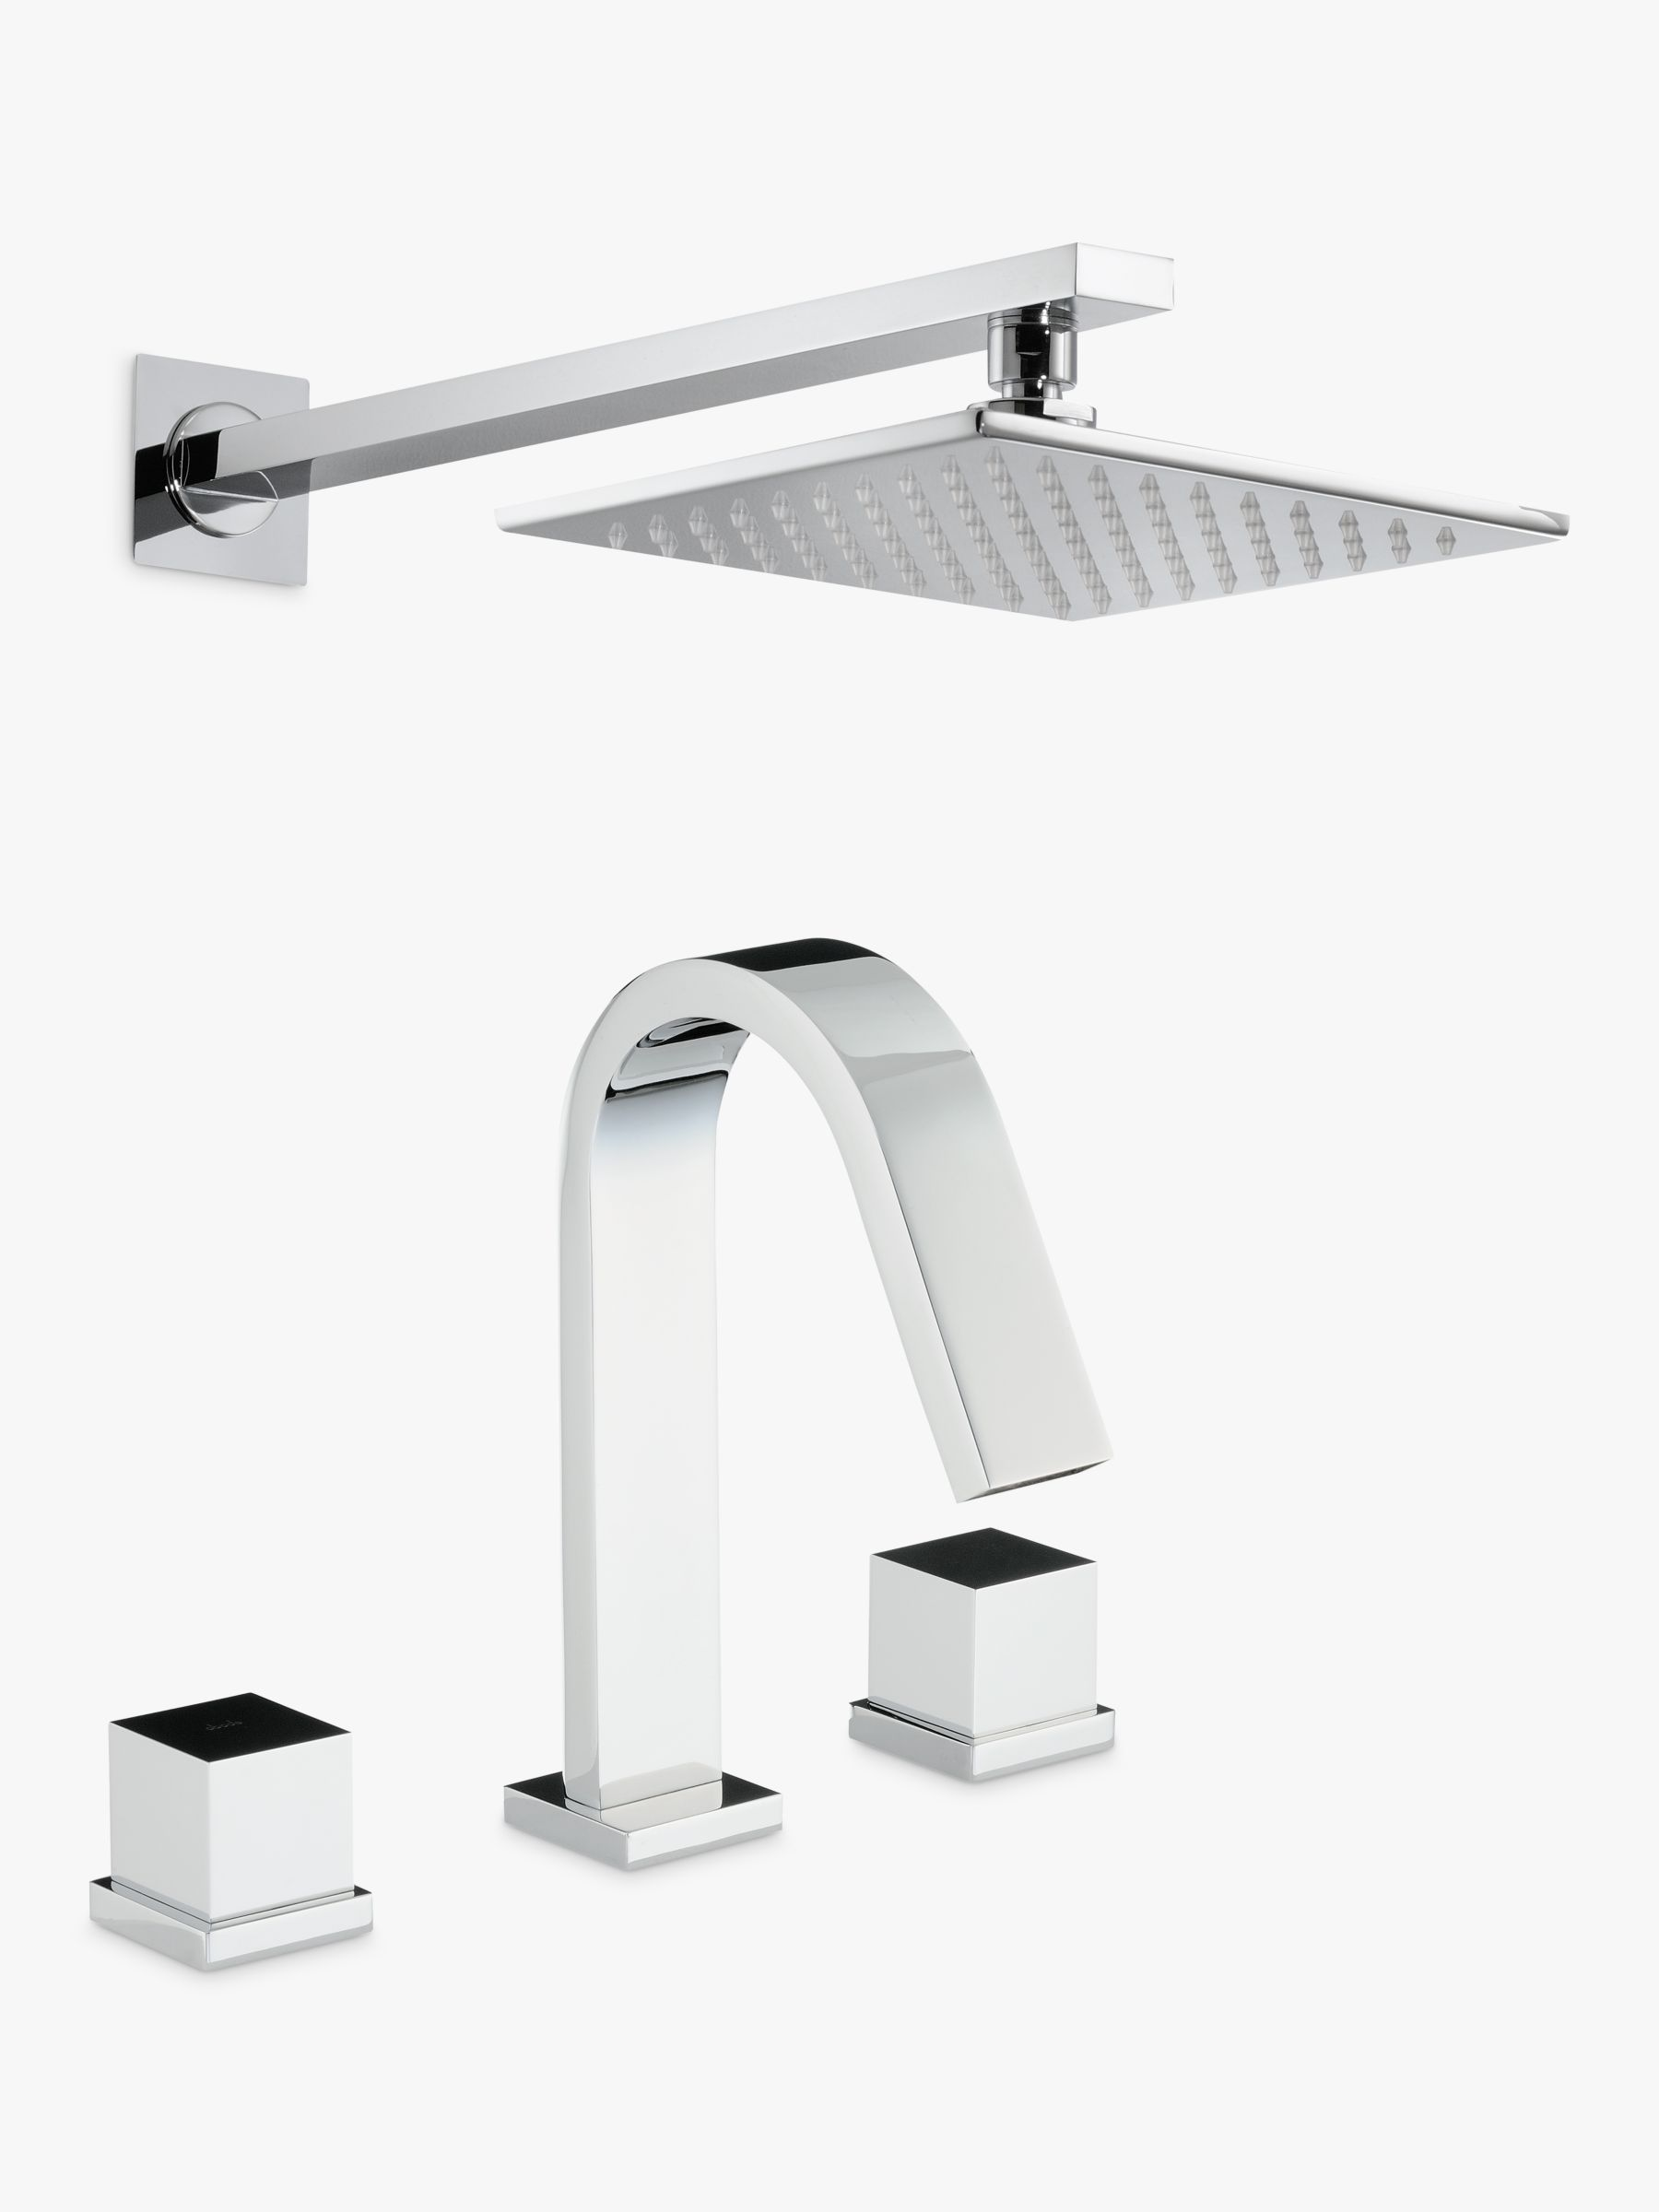 Abode Abode Zeal Thermostatic Deck Mounted 3 Hole Bath Mixer Tap with Wall Mounted Shower